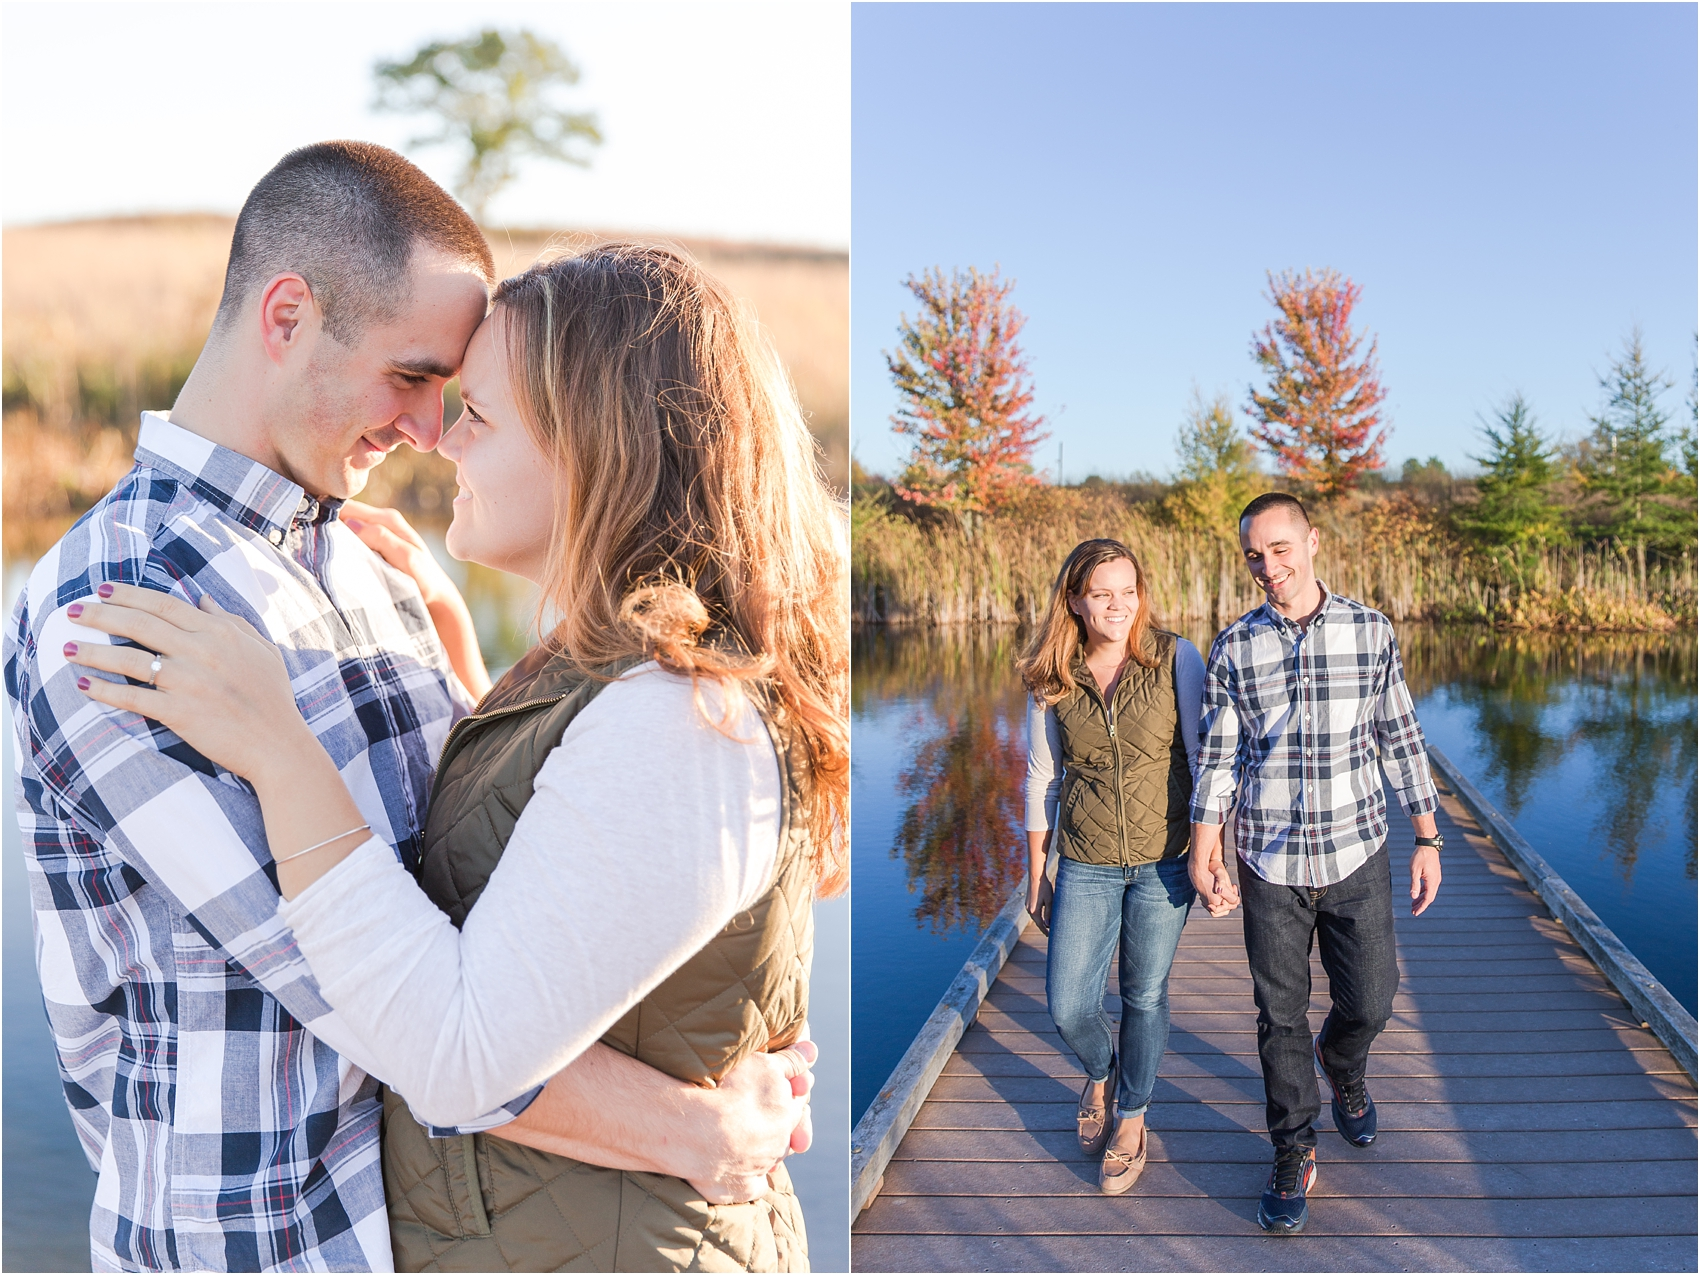 romantic-fall-engagement-photos-at-indian-springs-metropark-in-clarkston-mi-by-courtney-carolyn-photography_0007.jpg